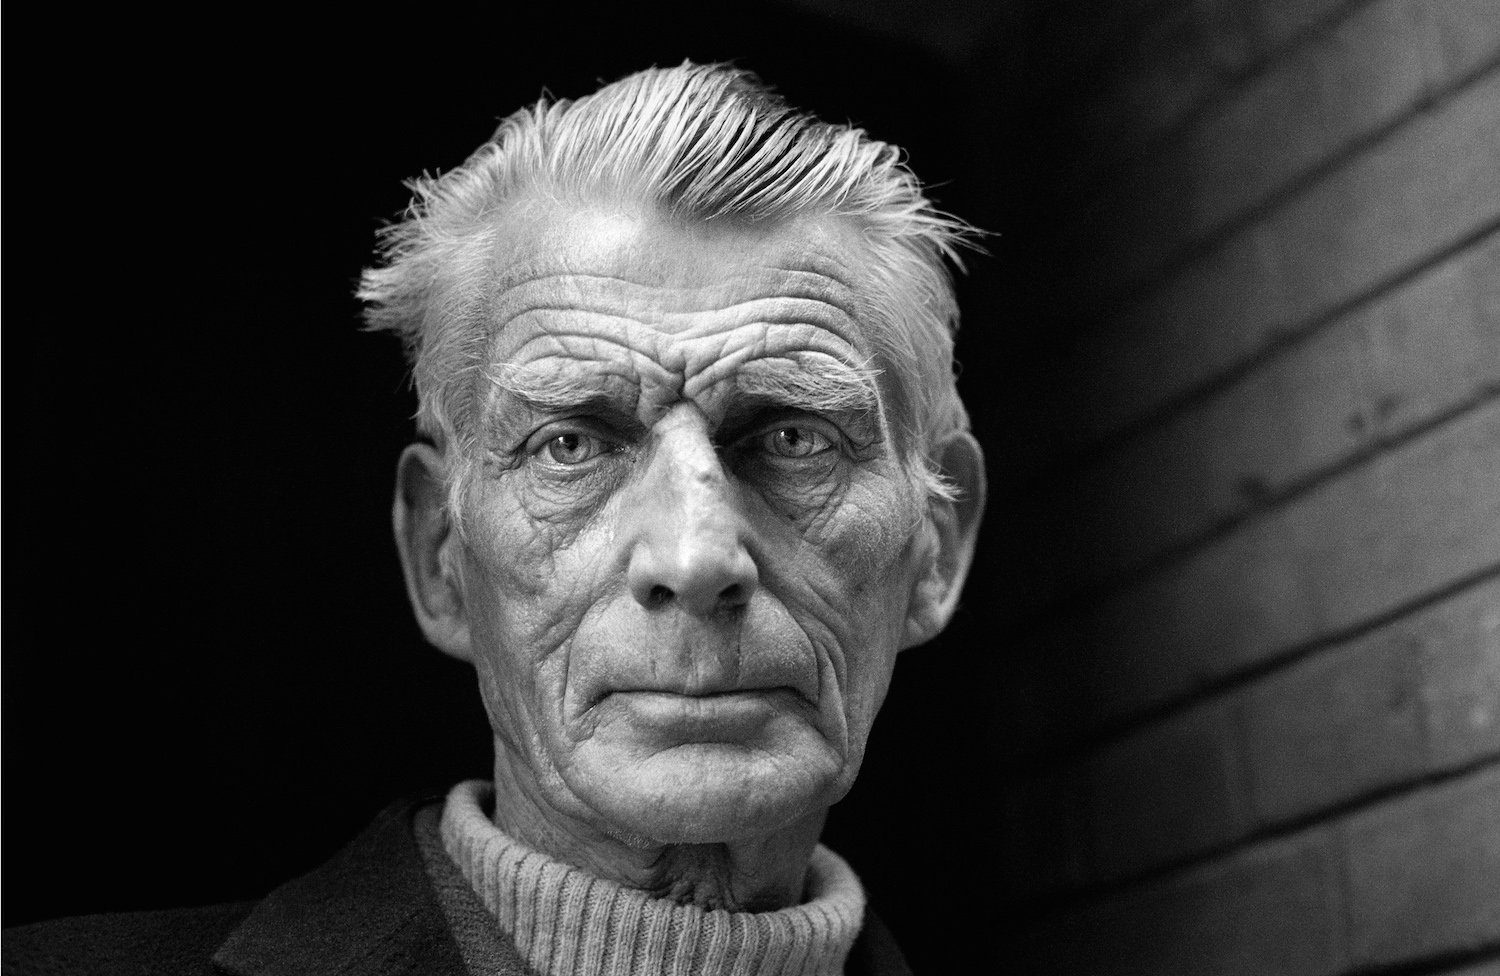 Black and White Photograph of Samuel Beckett leaving the Royal Court Theatre, England 1976 by Jane Bown